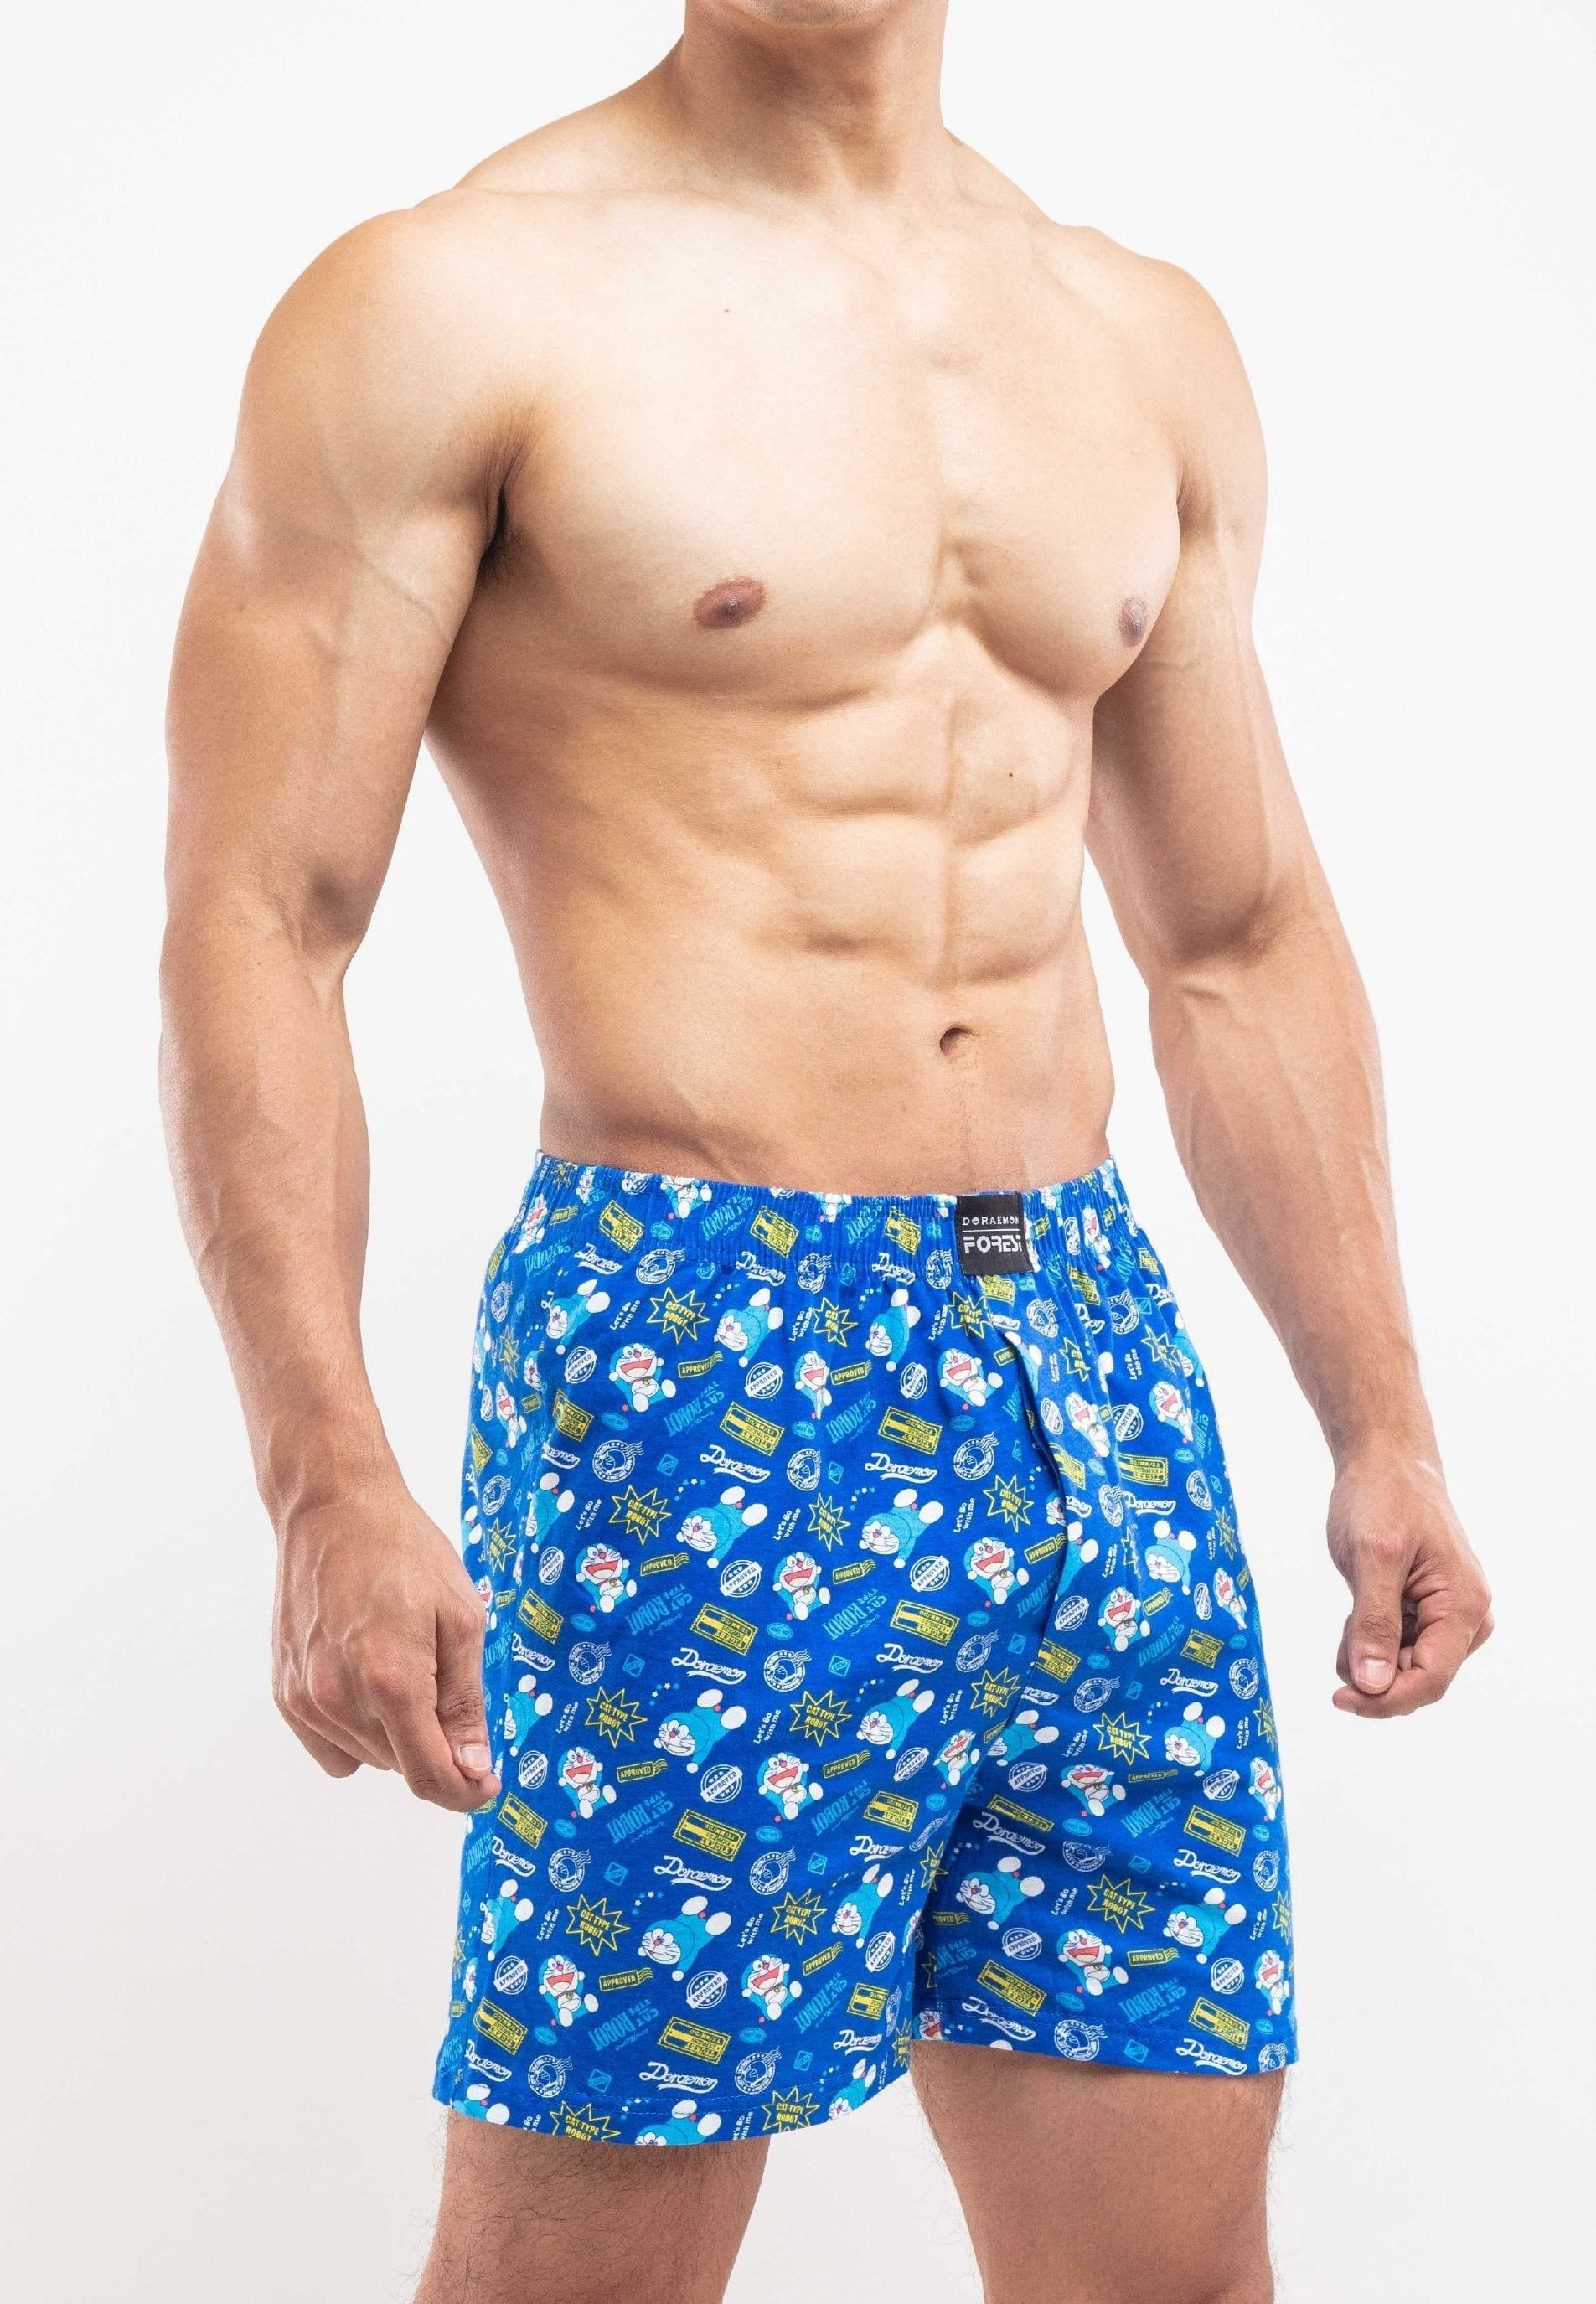 Doraemon 100% Cotton Printed Boxers ( 2 Pieces ) Assorted Colours - DUD0017X